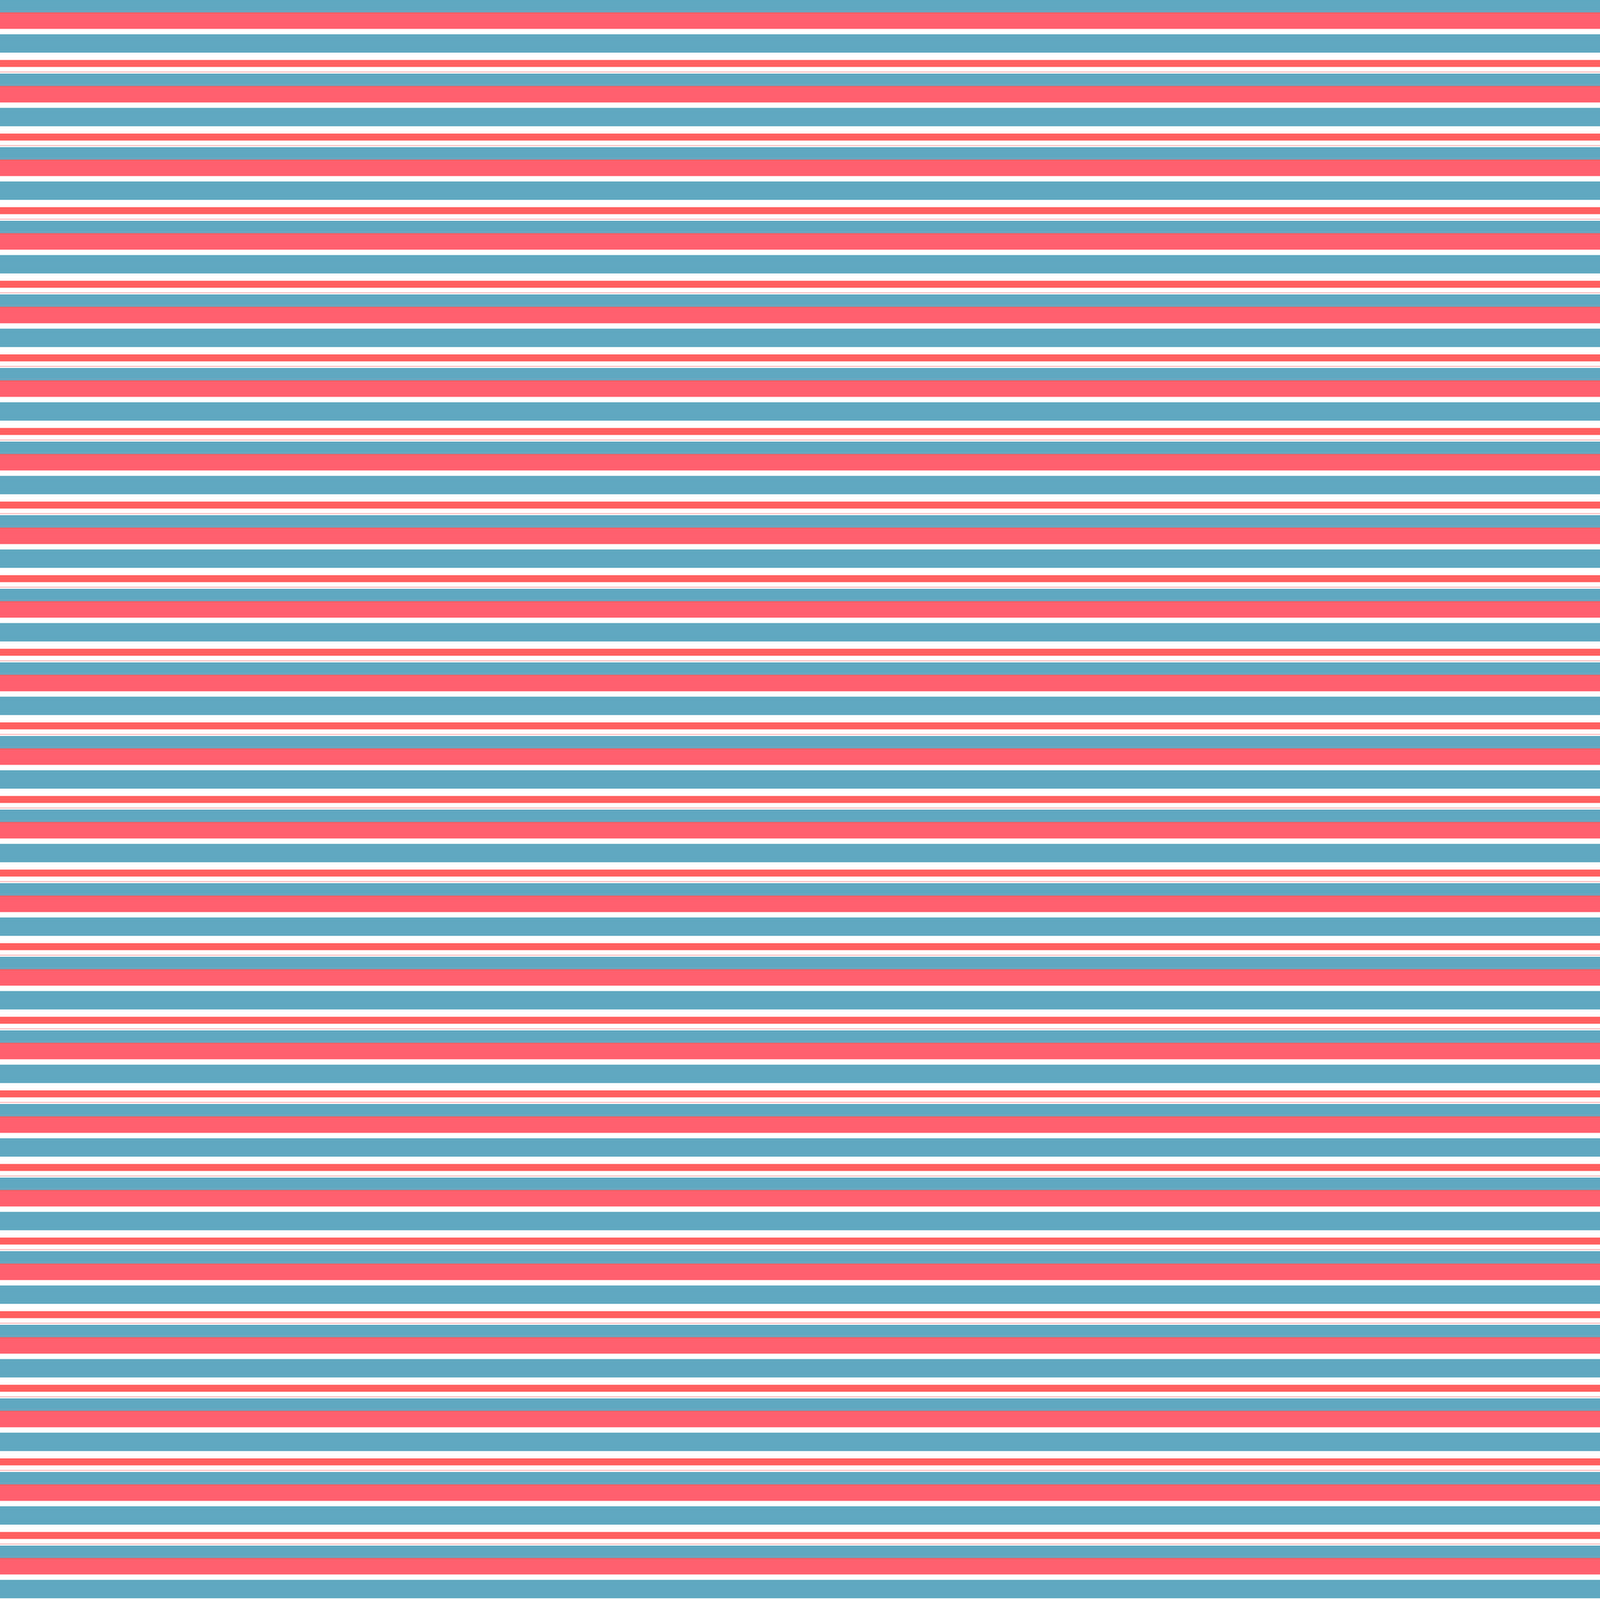 Scrapbook paper designs to print - Free Printable Background Paper Camo Free Striped Scrapbooking And Gift Wrapping Paper Blue